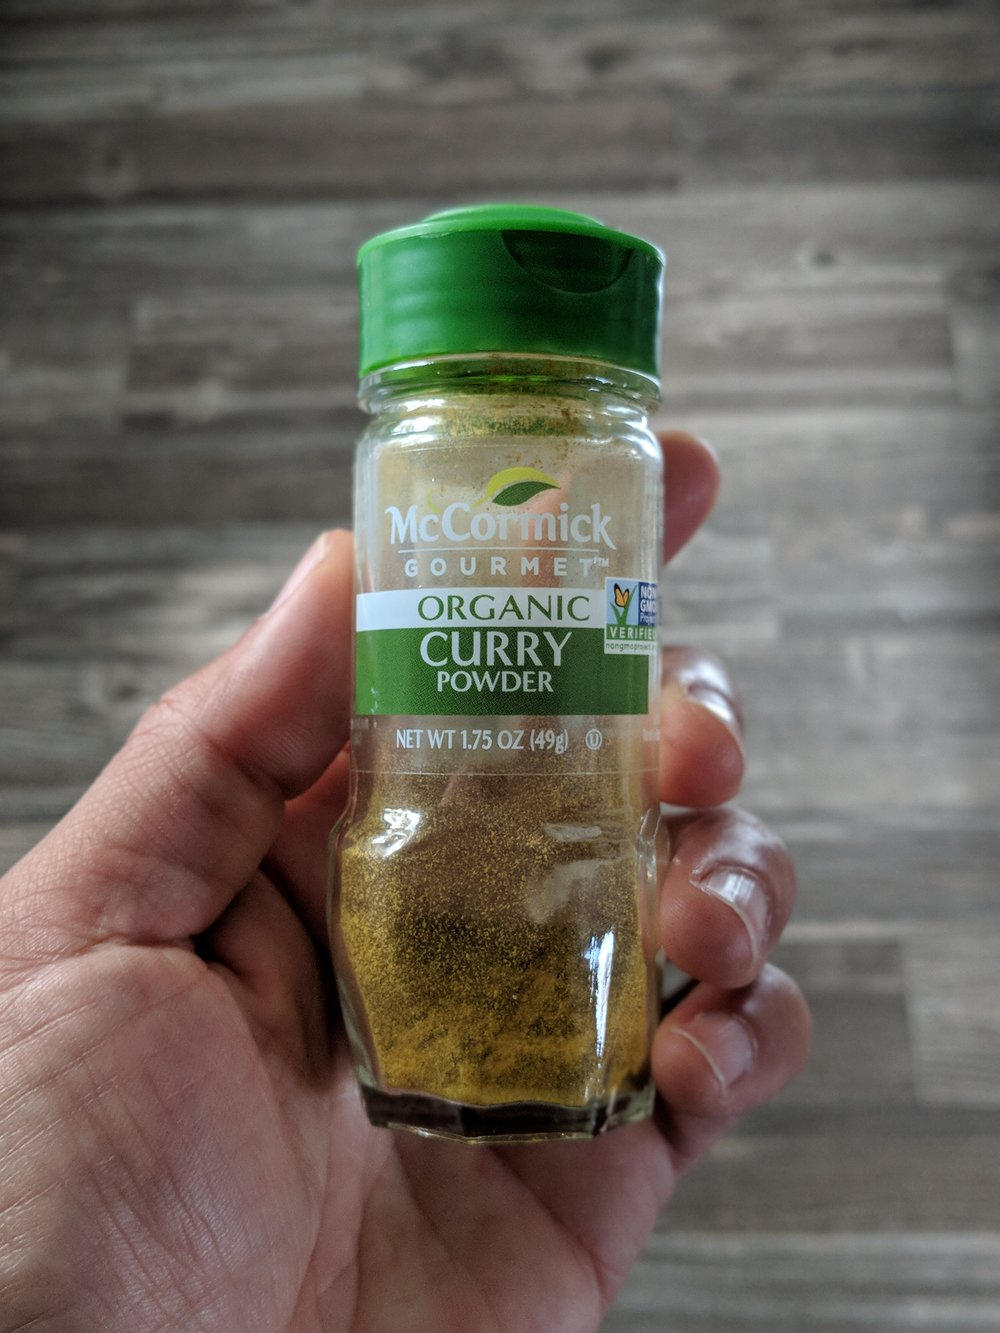 Curry Powder - It's in the name... use it for Curry, and if you want your lentil soup to have a curry flavor.